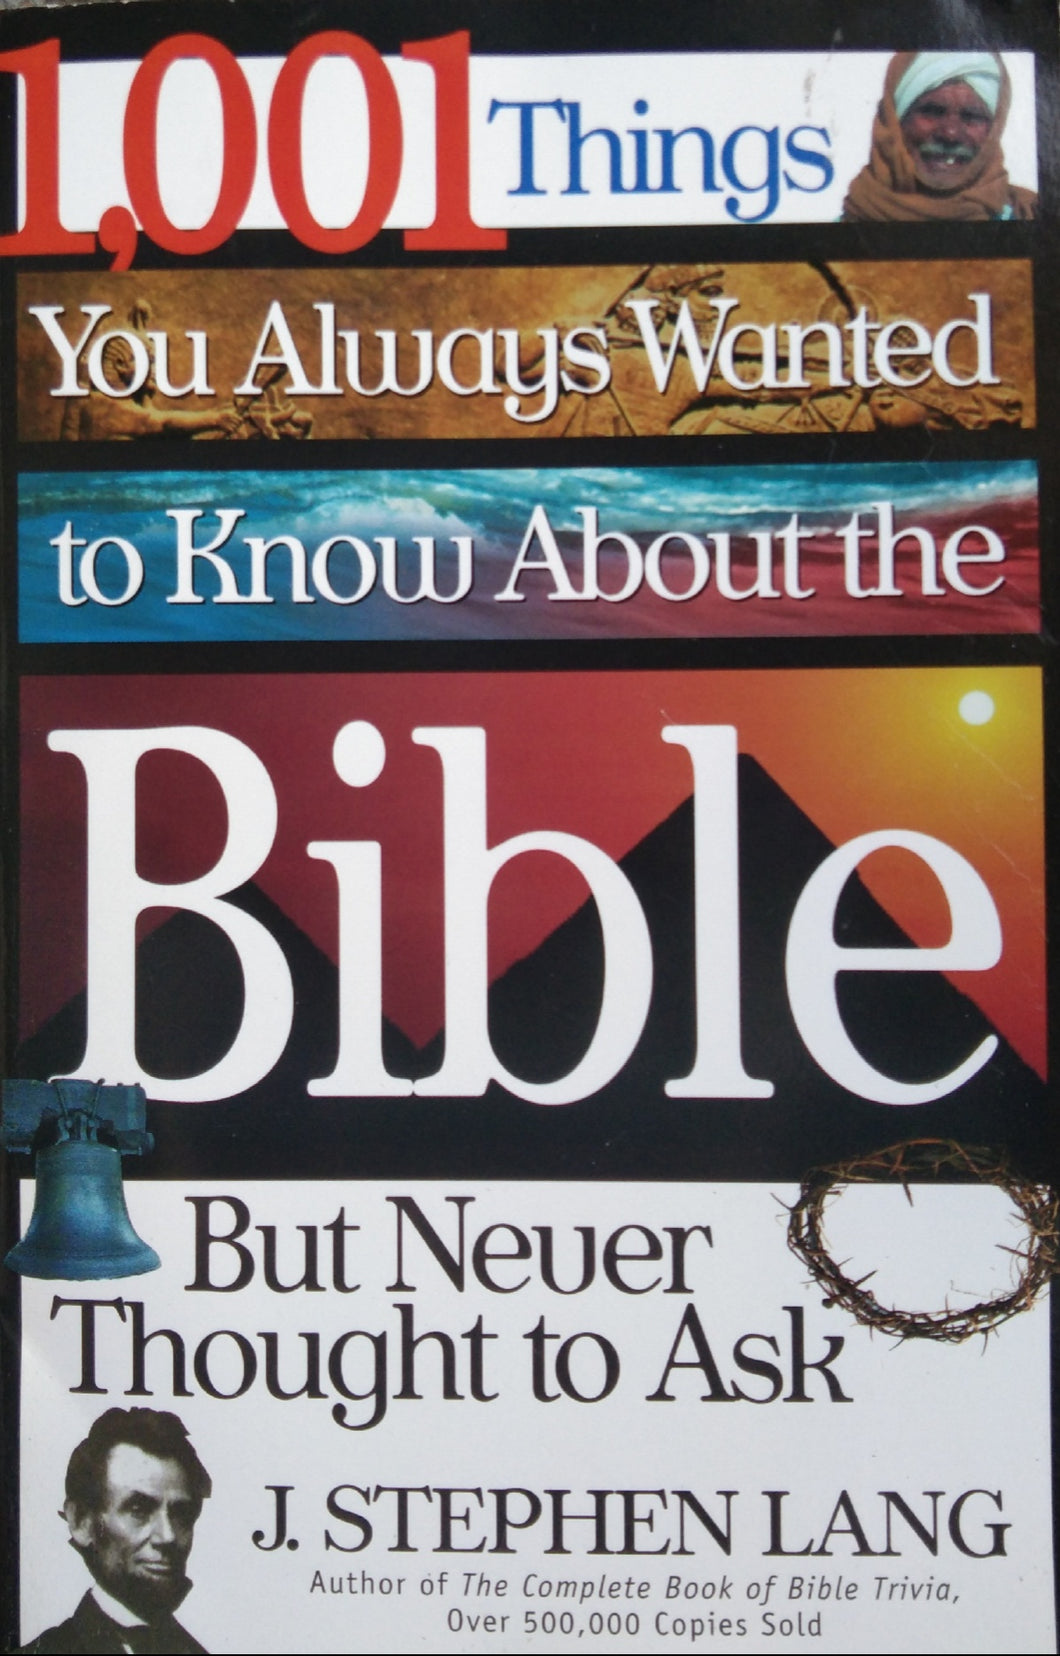 1001 Things You Always Wanted To Know About The Bible but Never Thought You Ask by J. Steohen Lang